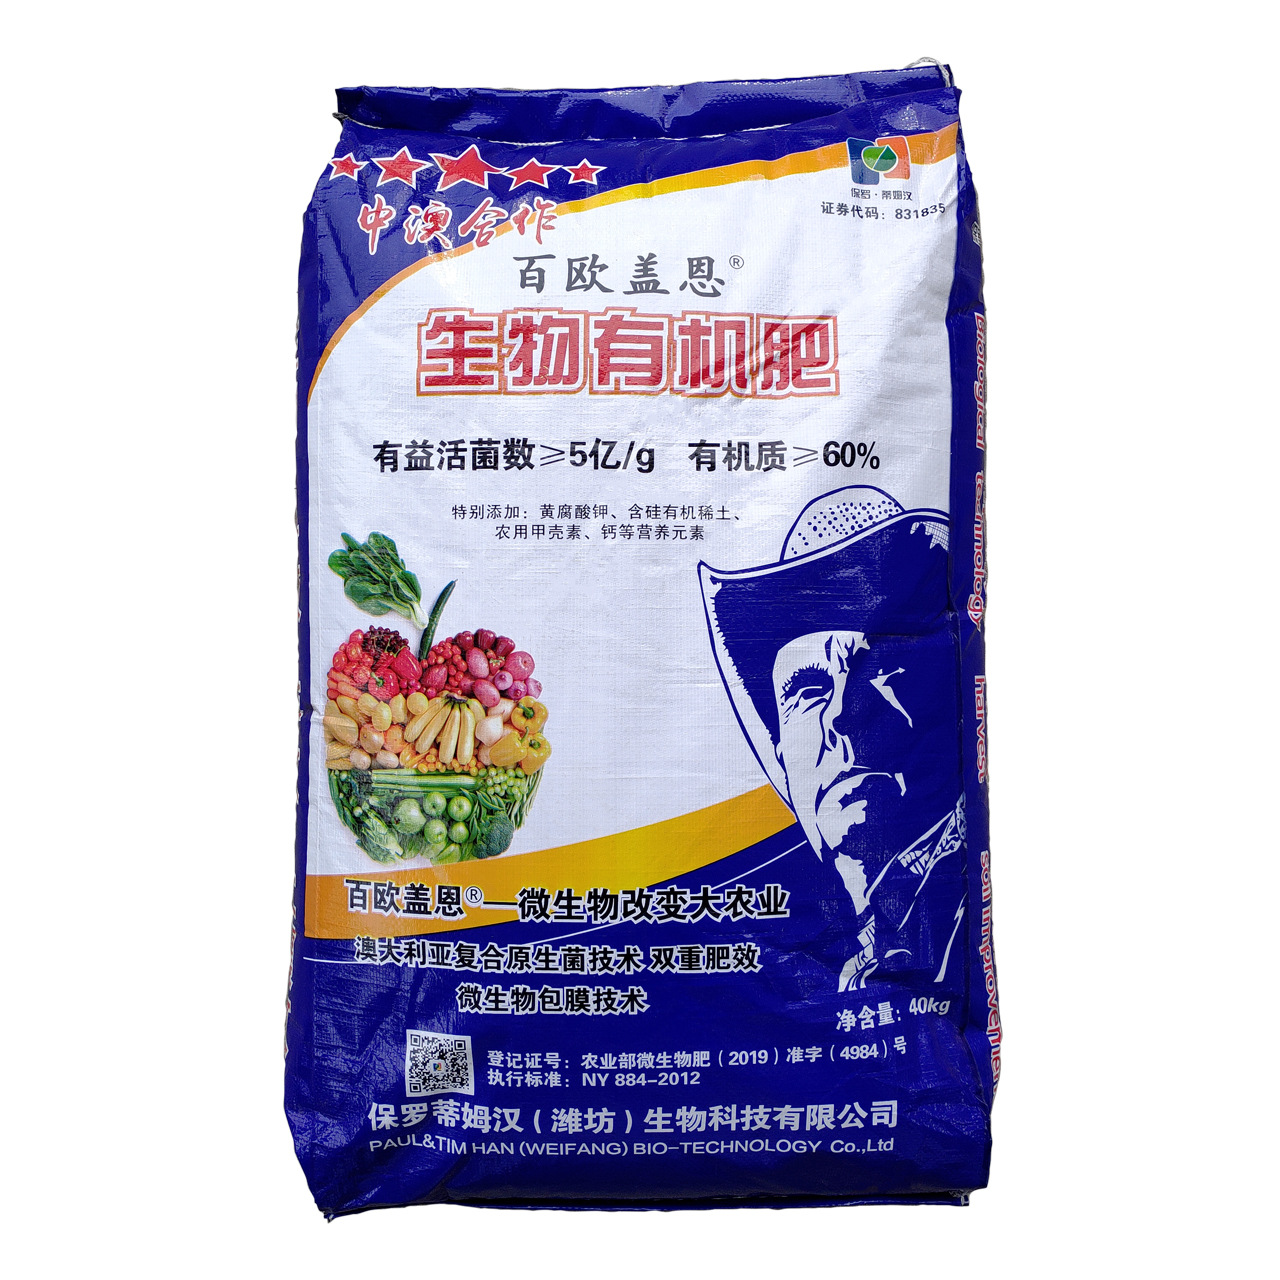 Microbial organic fertilizer compound fertilizer agricultural fertilizer nitrogen fixing bacteria wh